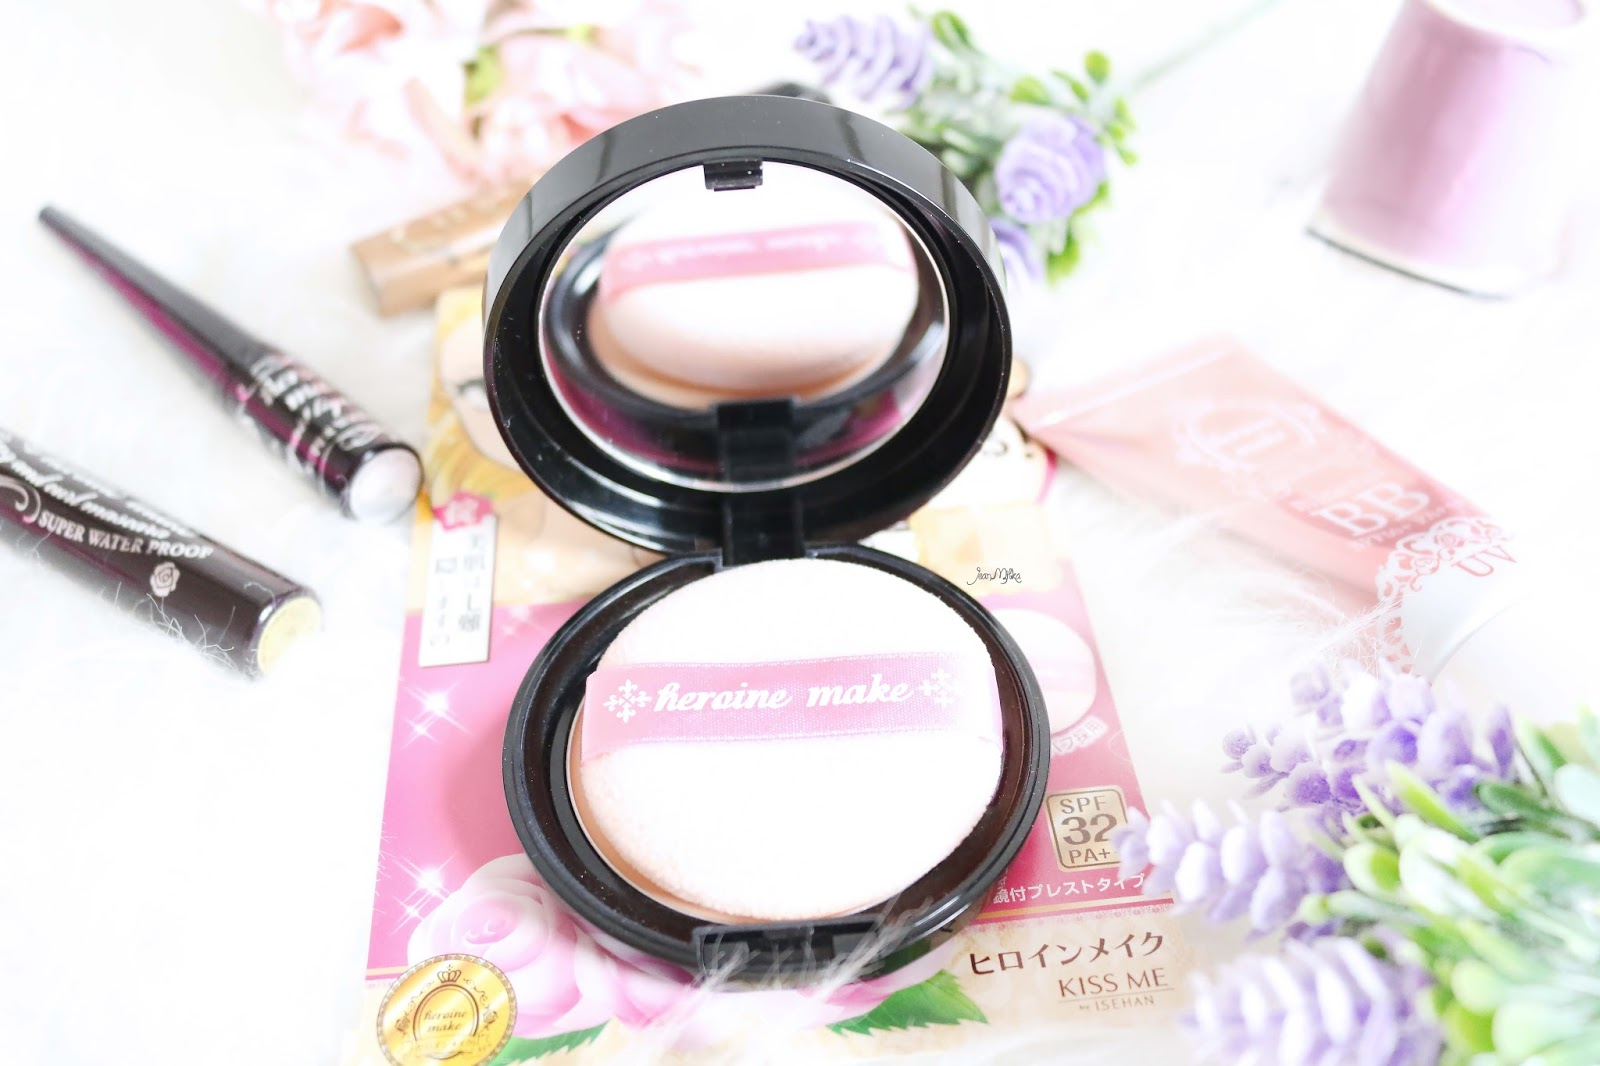 makeup, drugstore, makeup murah, review, beauty, beauty blog indonesia, makeup pemula, makeup untuk pemula, makeup murah indo